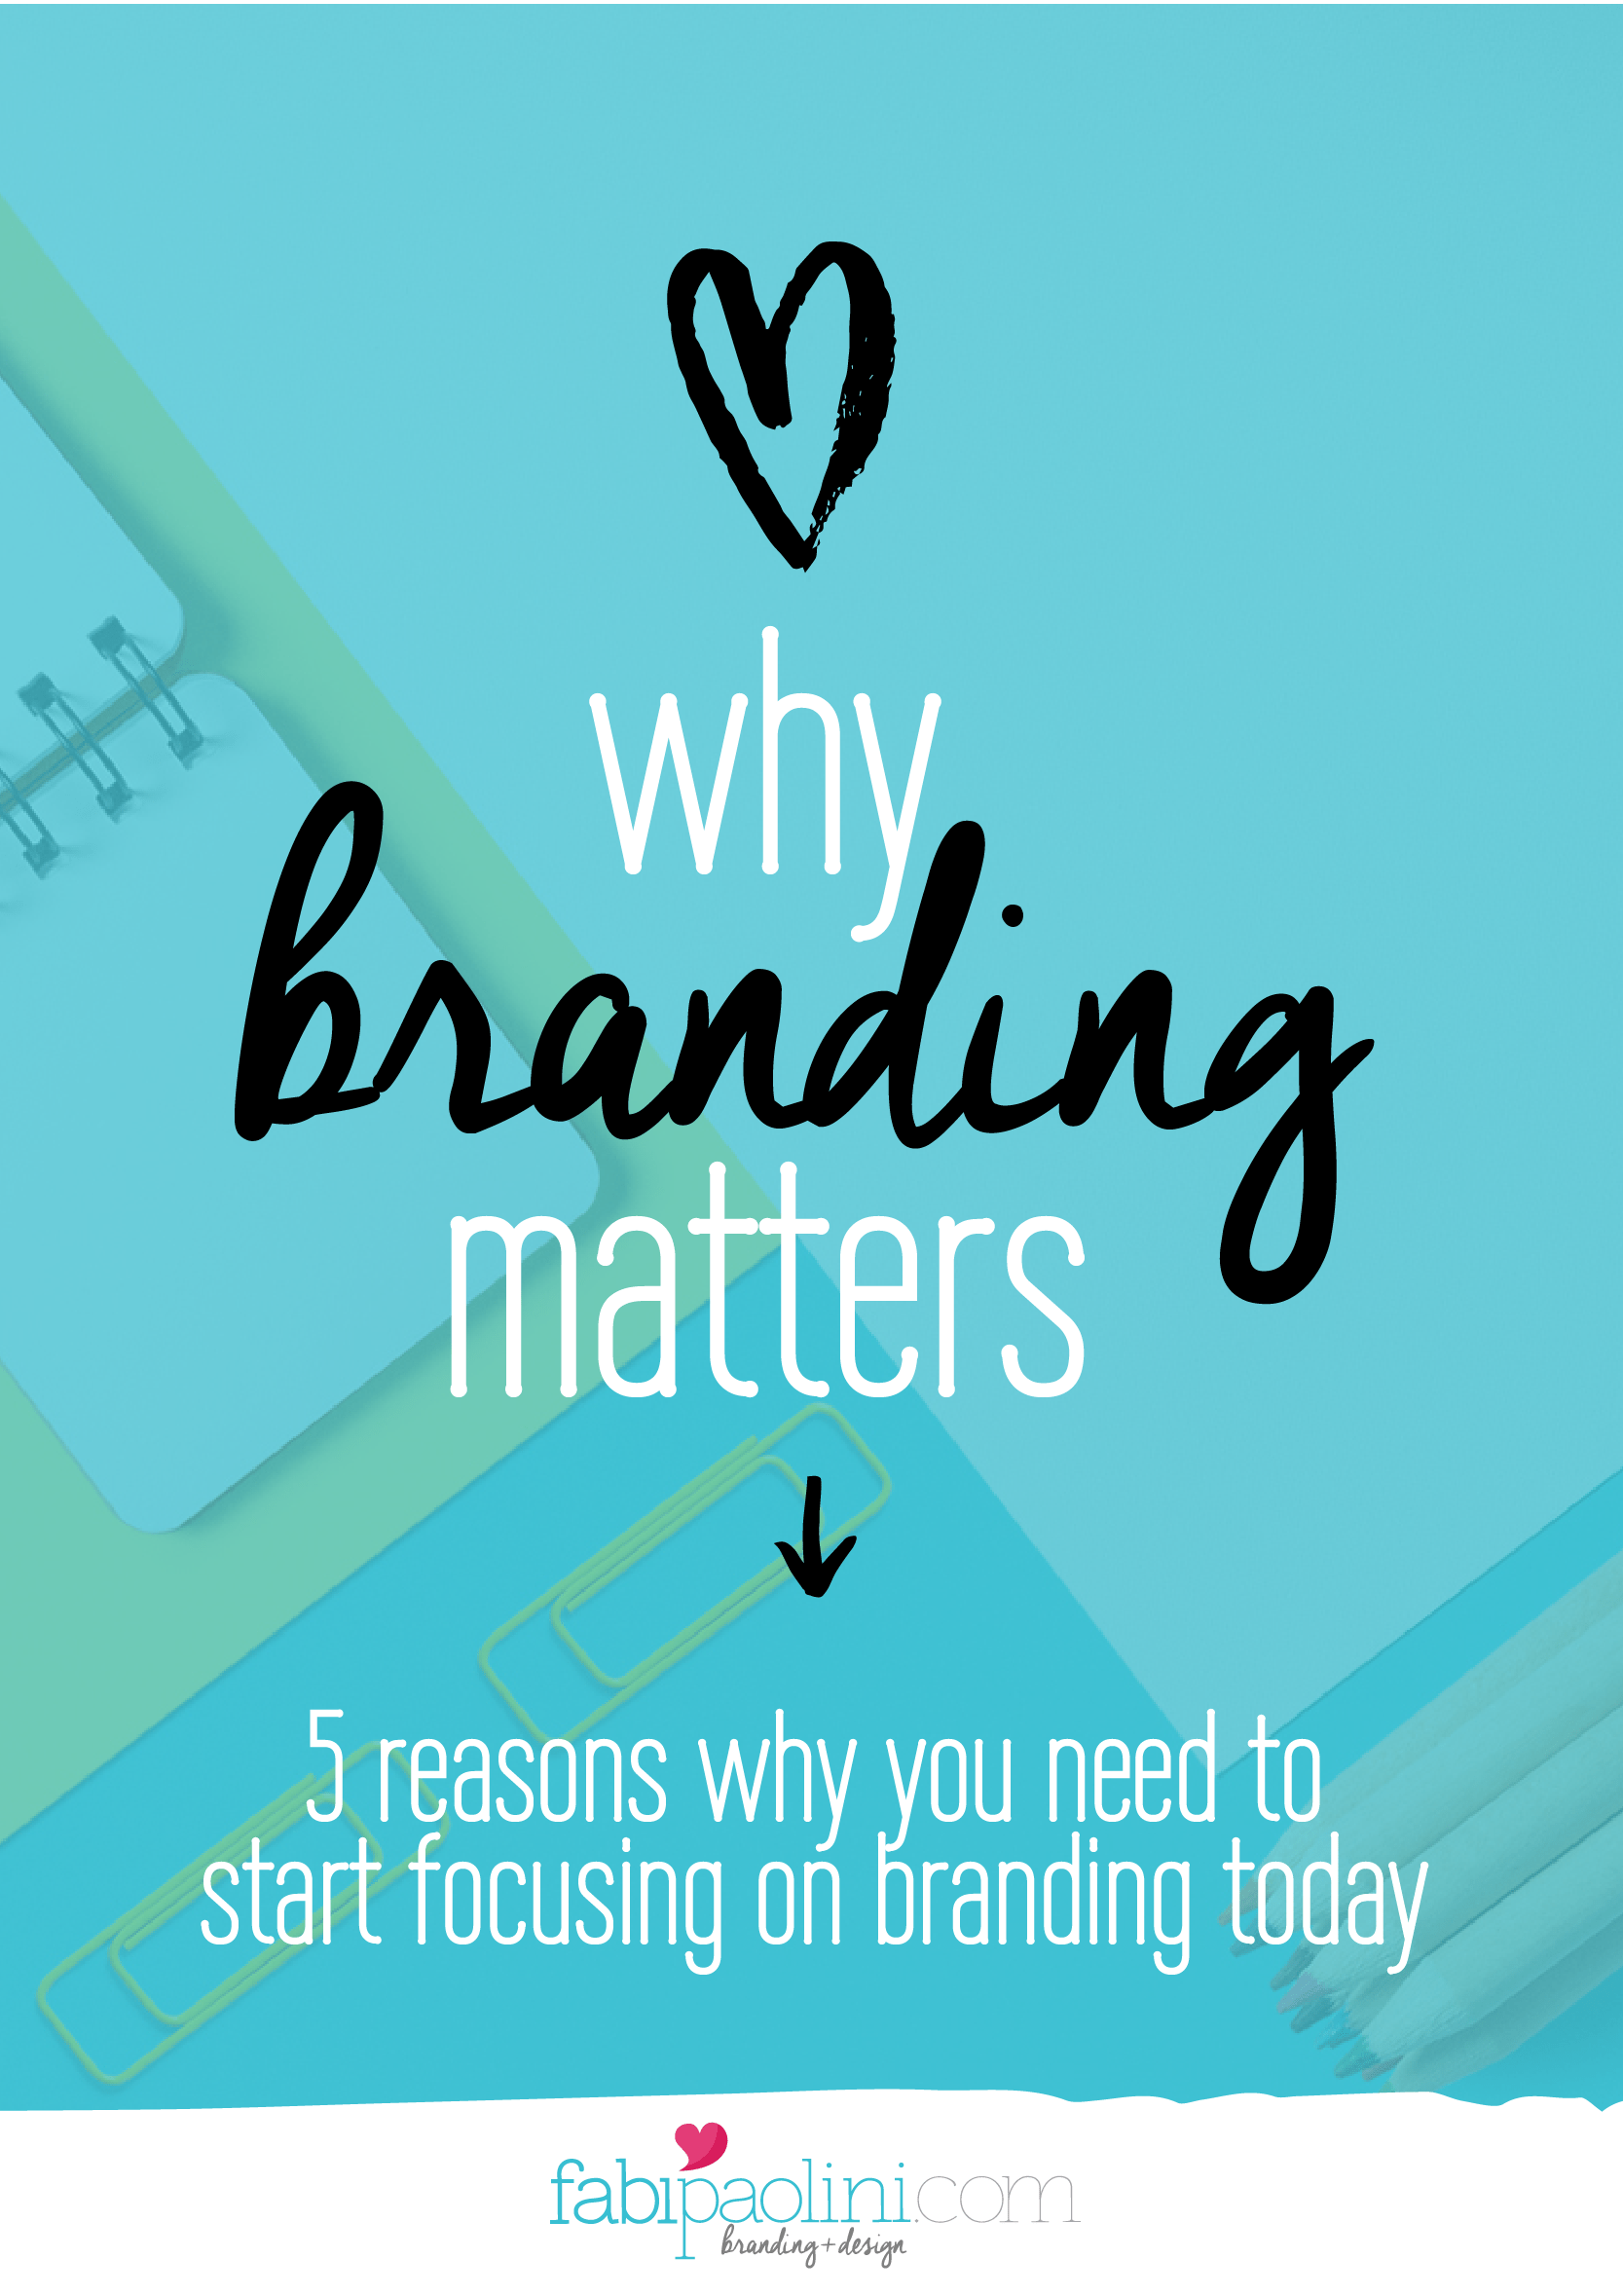 Why branding matters and is important. 5 reasons why you need to start focusing on branding today. Click to read more.